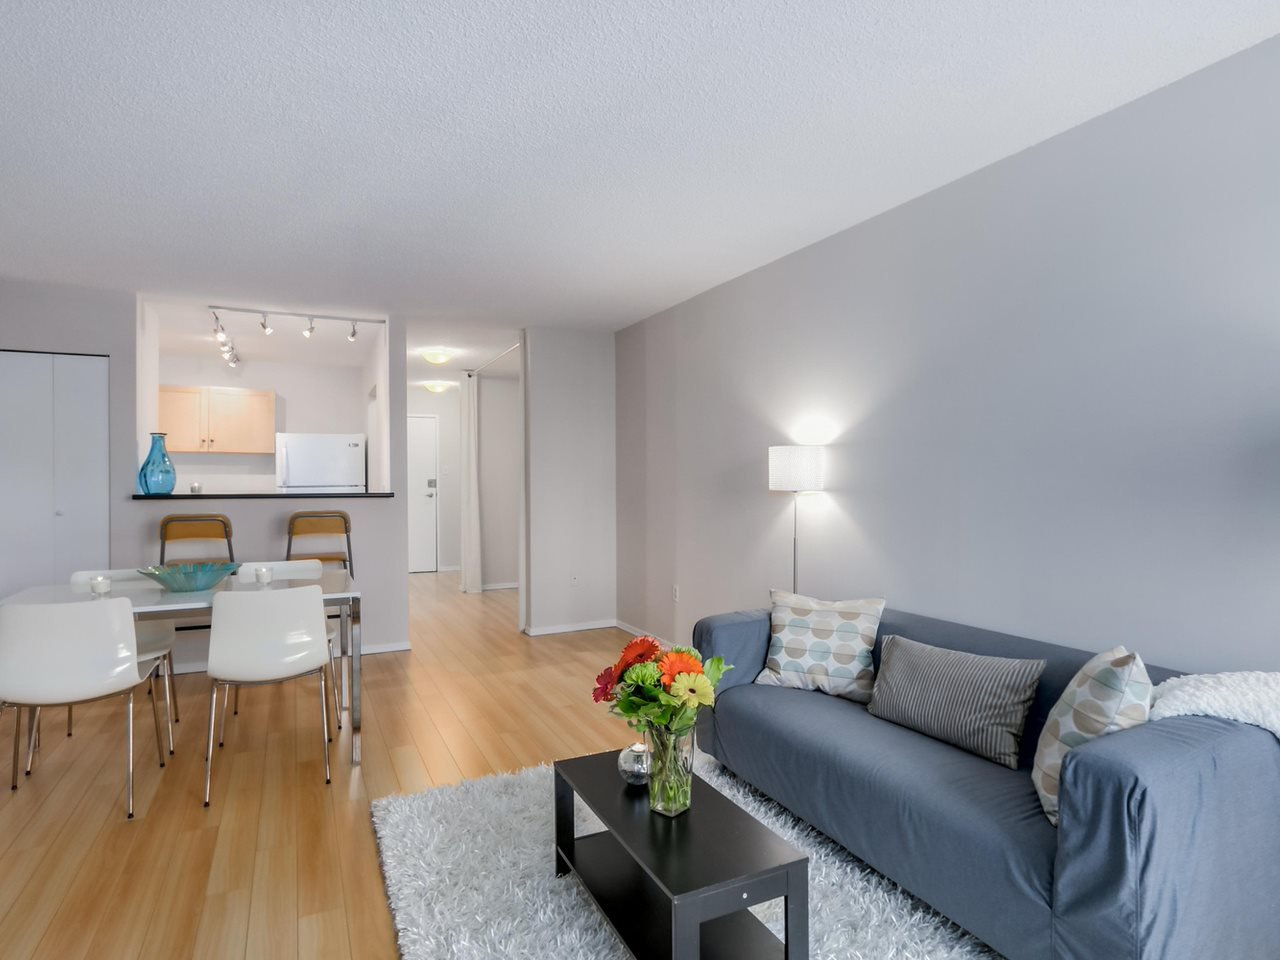 """Photo 3: Photos: 207 1545 E 2ND Avenue in Vancouver: Grandview VE Condo for sale in """"TALISHAN WOODS"""" (Vancouver East)  : MLS®# R2086466"""